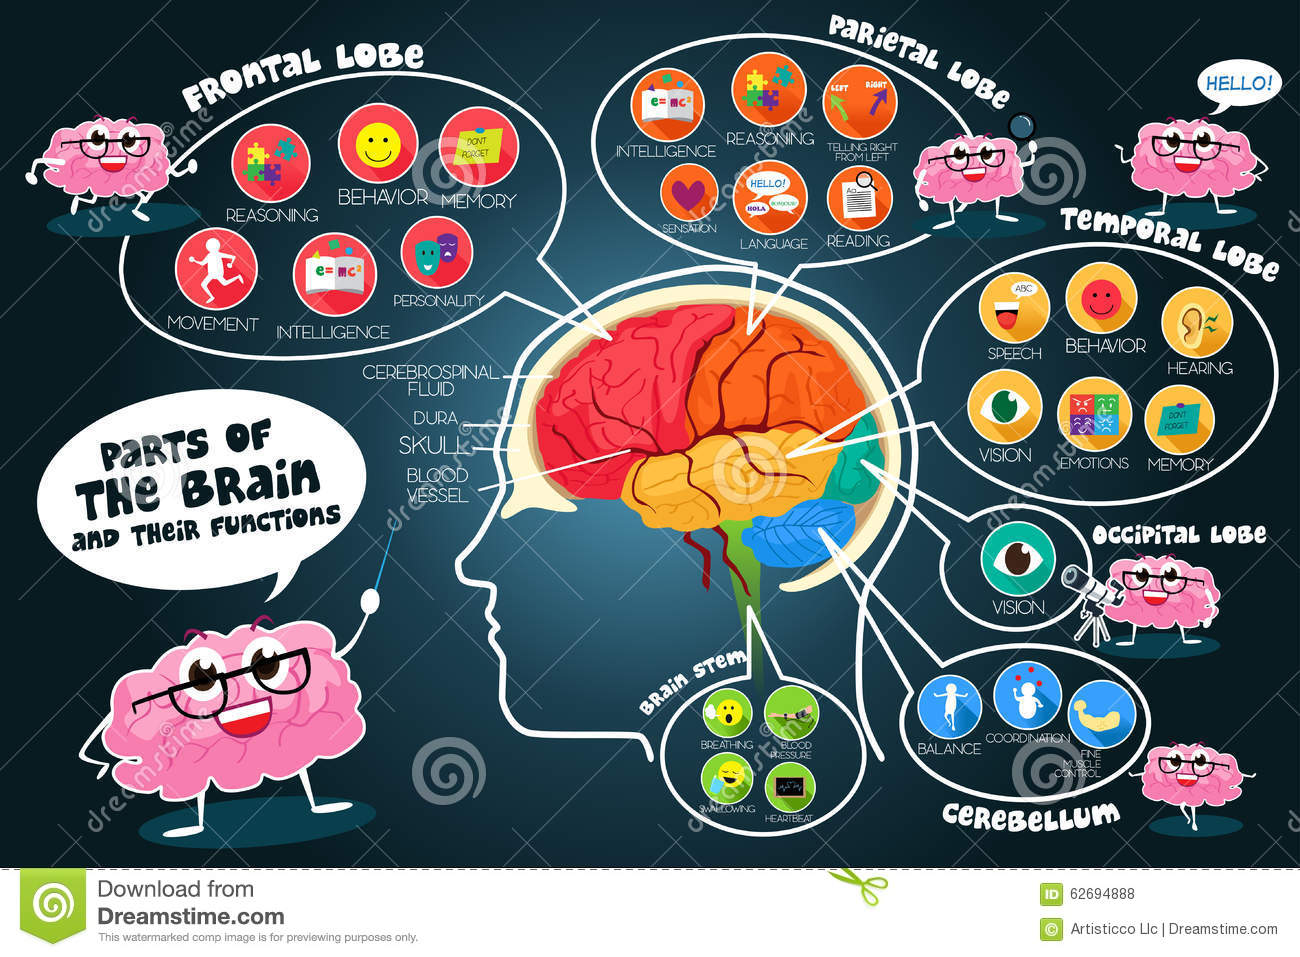 typical business plan sections of the brain